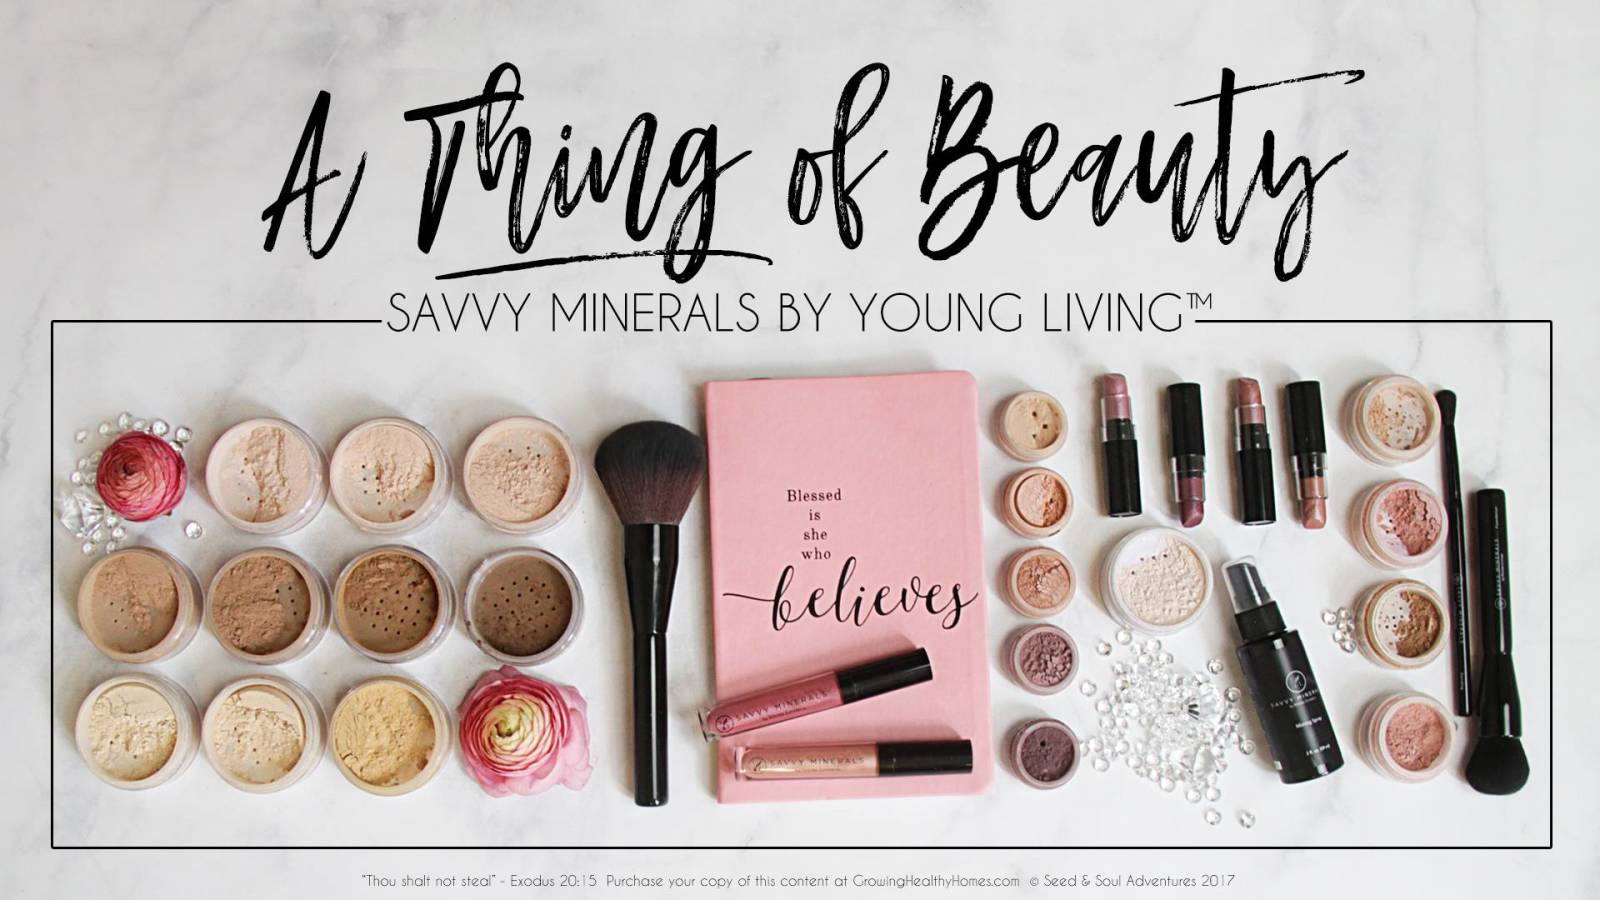 Savvy Minerals by Young Living: A Thing of Beauty!